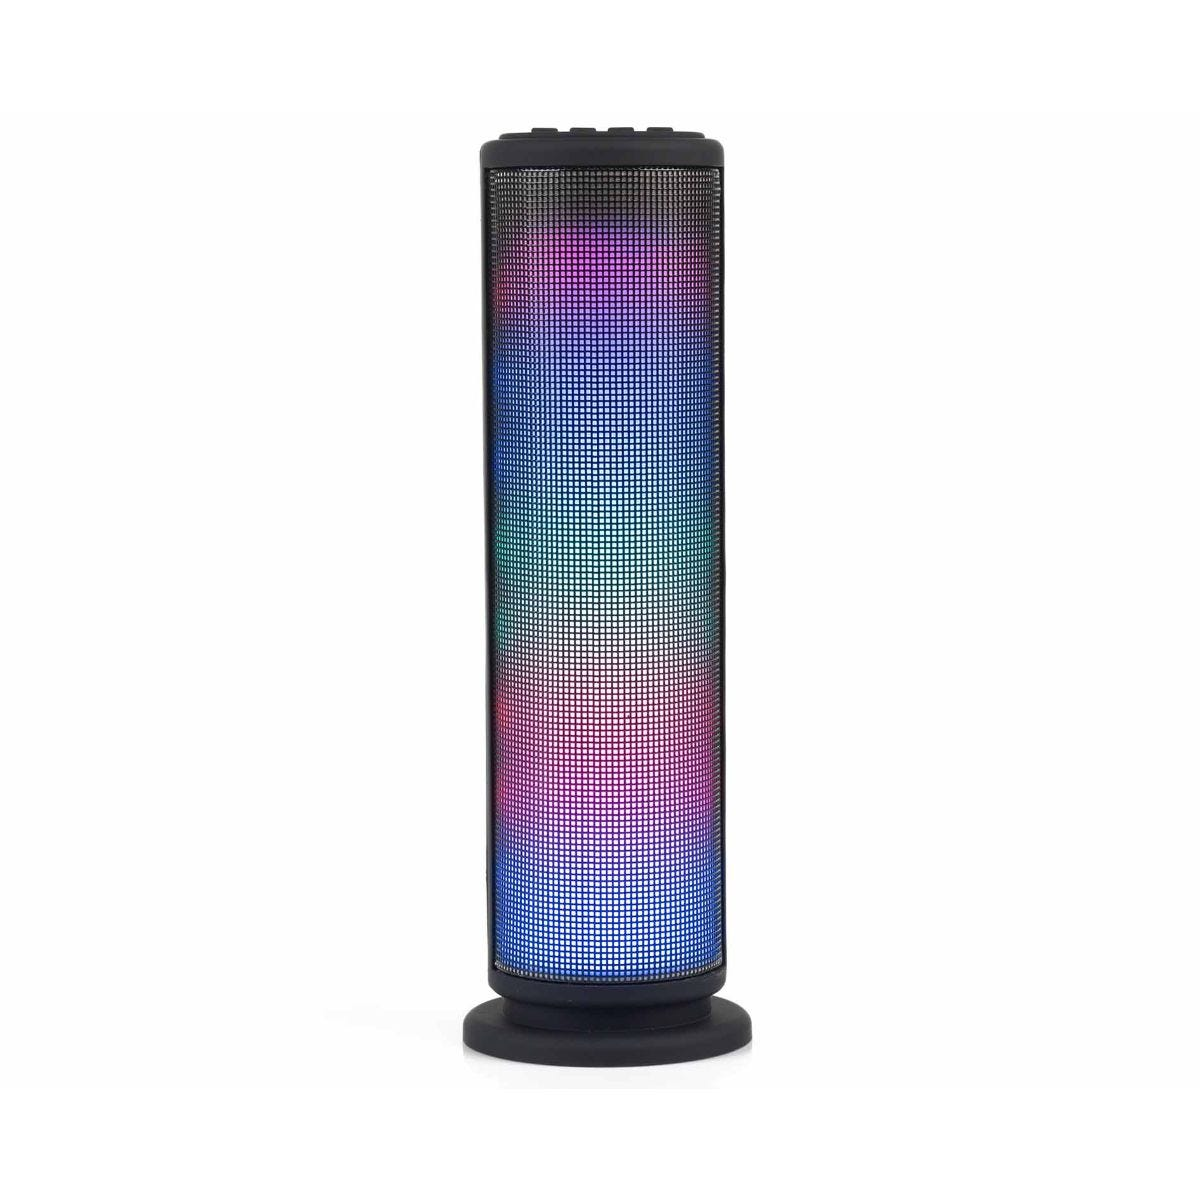 Image of Intempo LED Bluetooth Tower Speaker